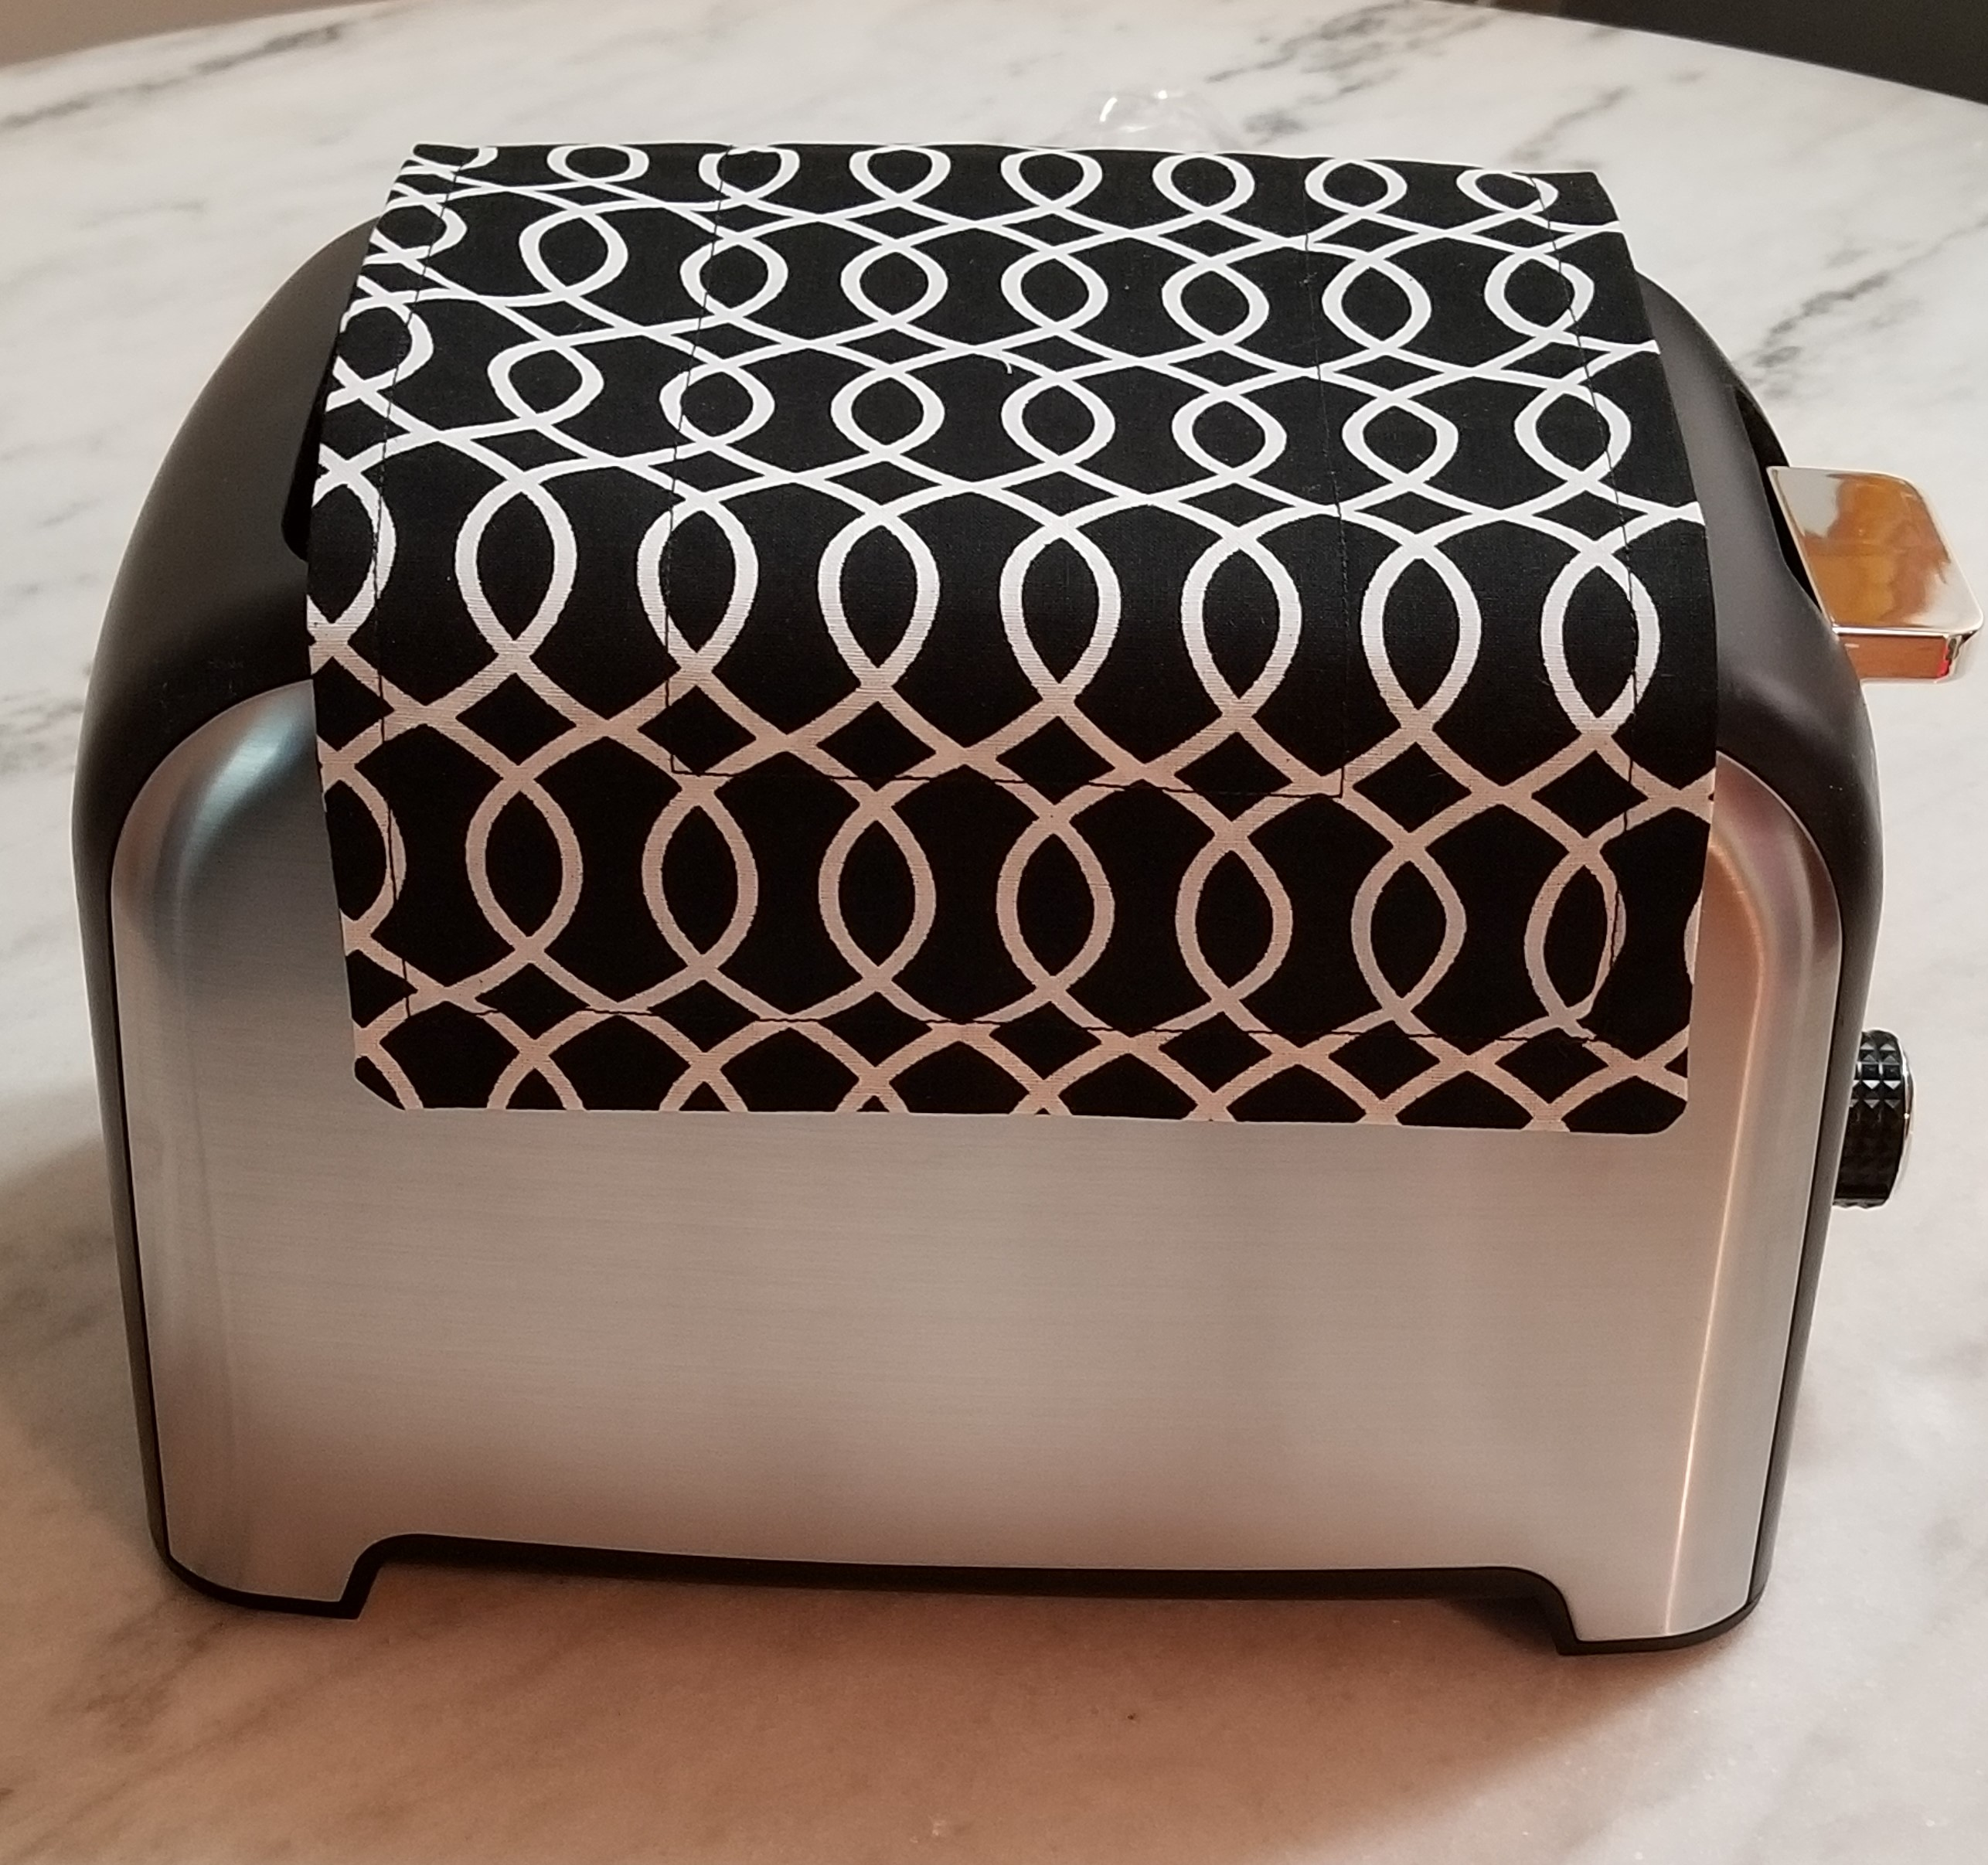 Toaster Huggee Toaster Cover Side View Blk&White